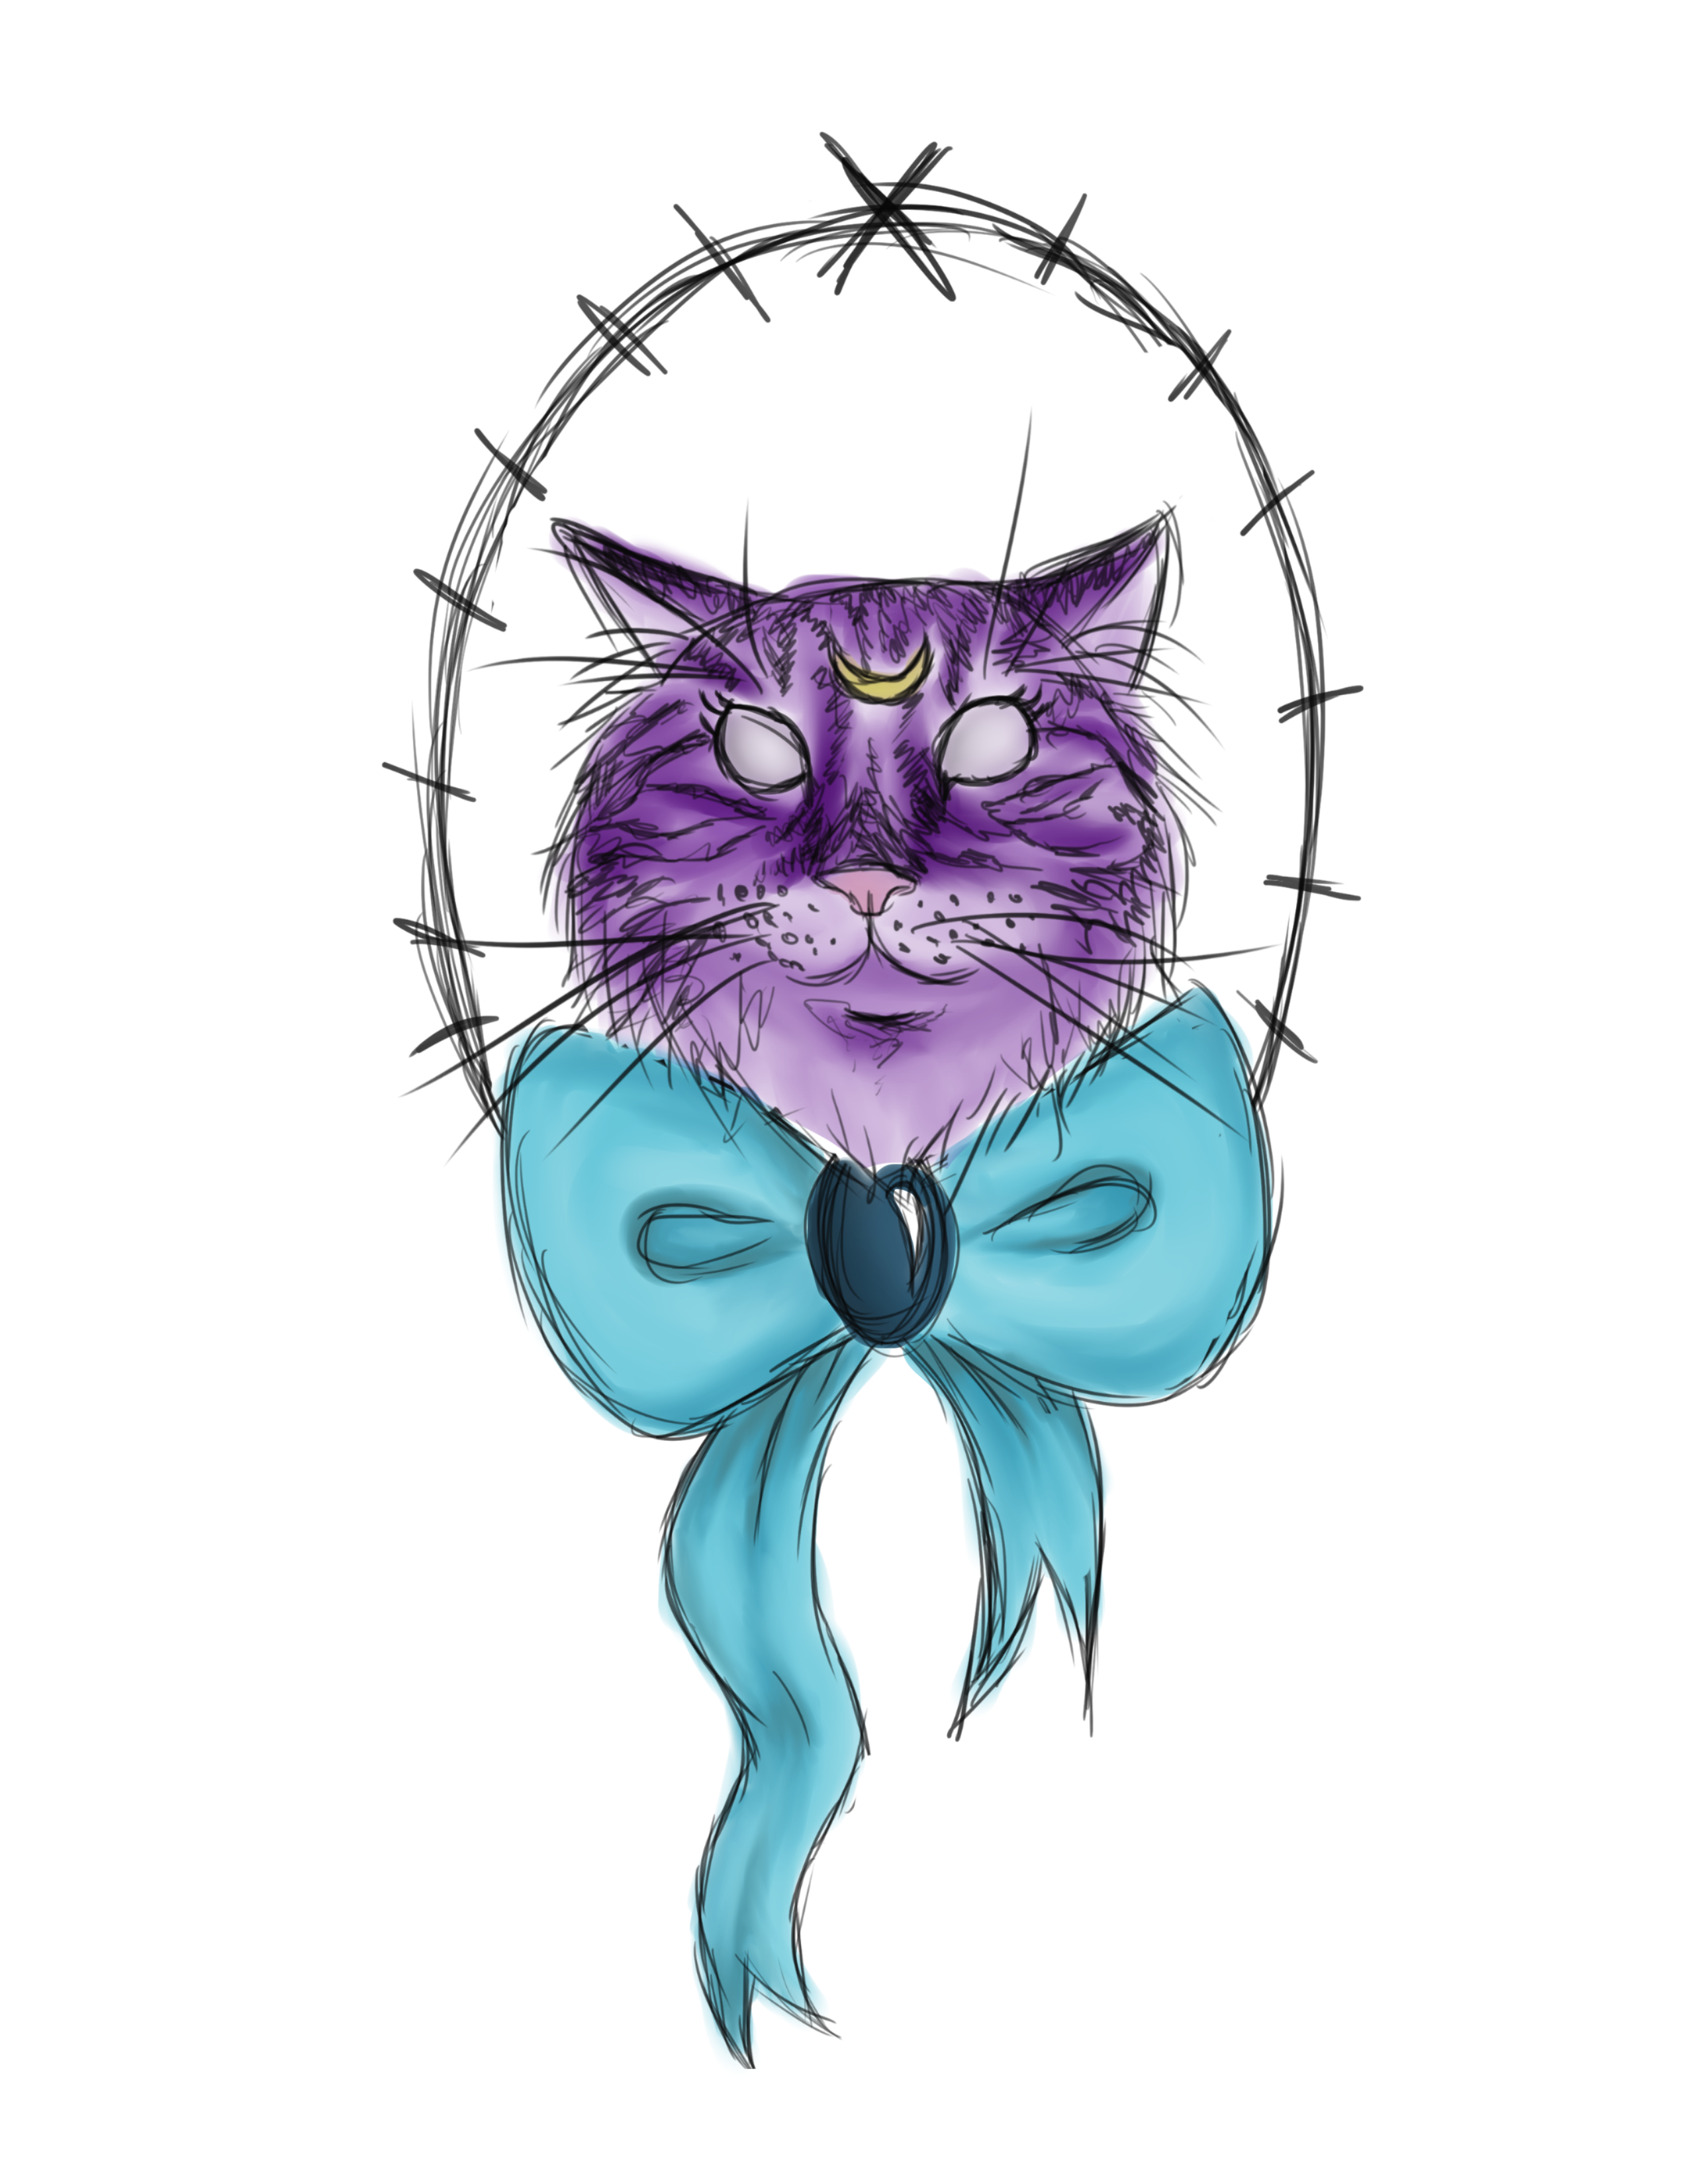 Tattoo design of Luna from Sailor Moon